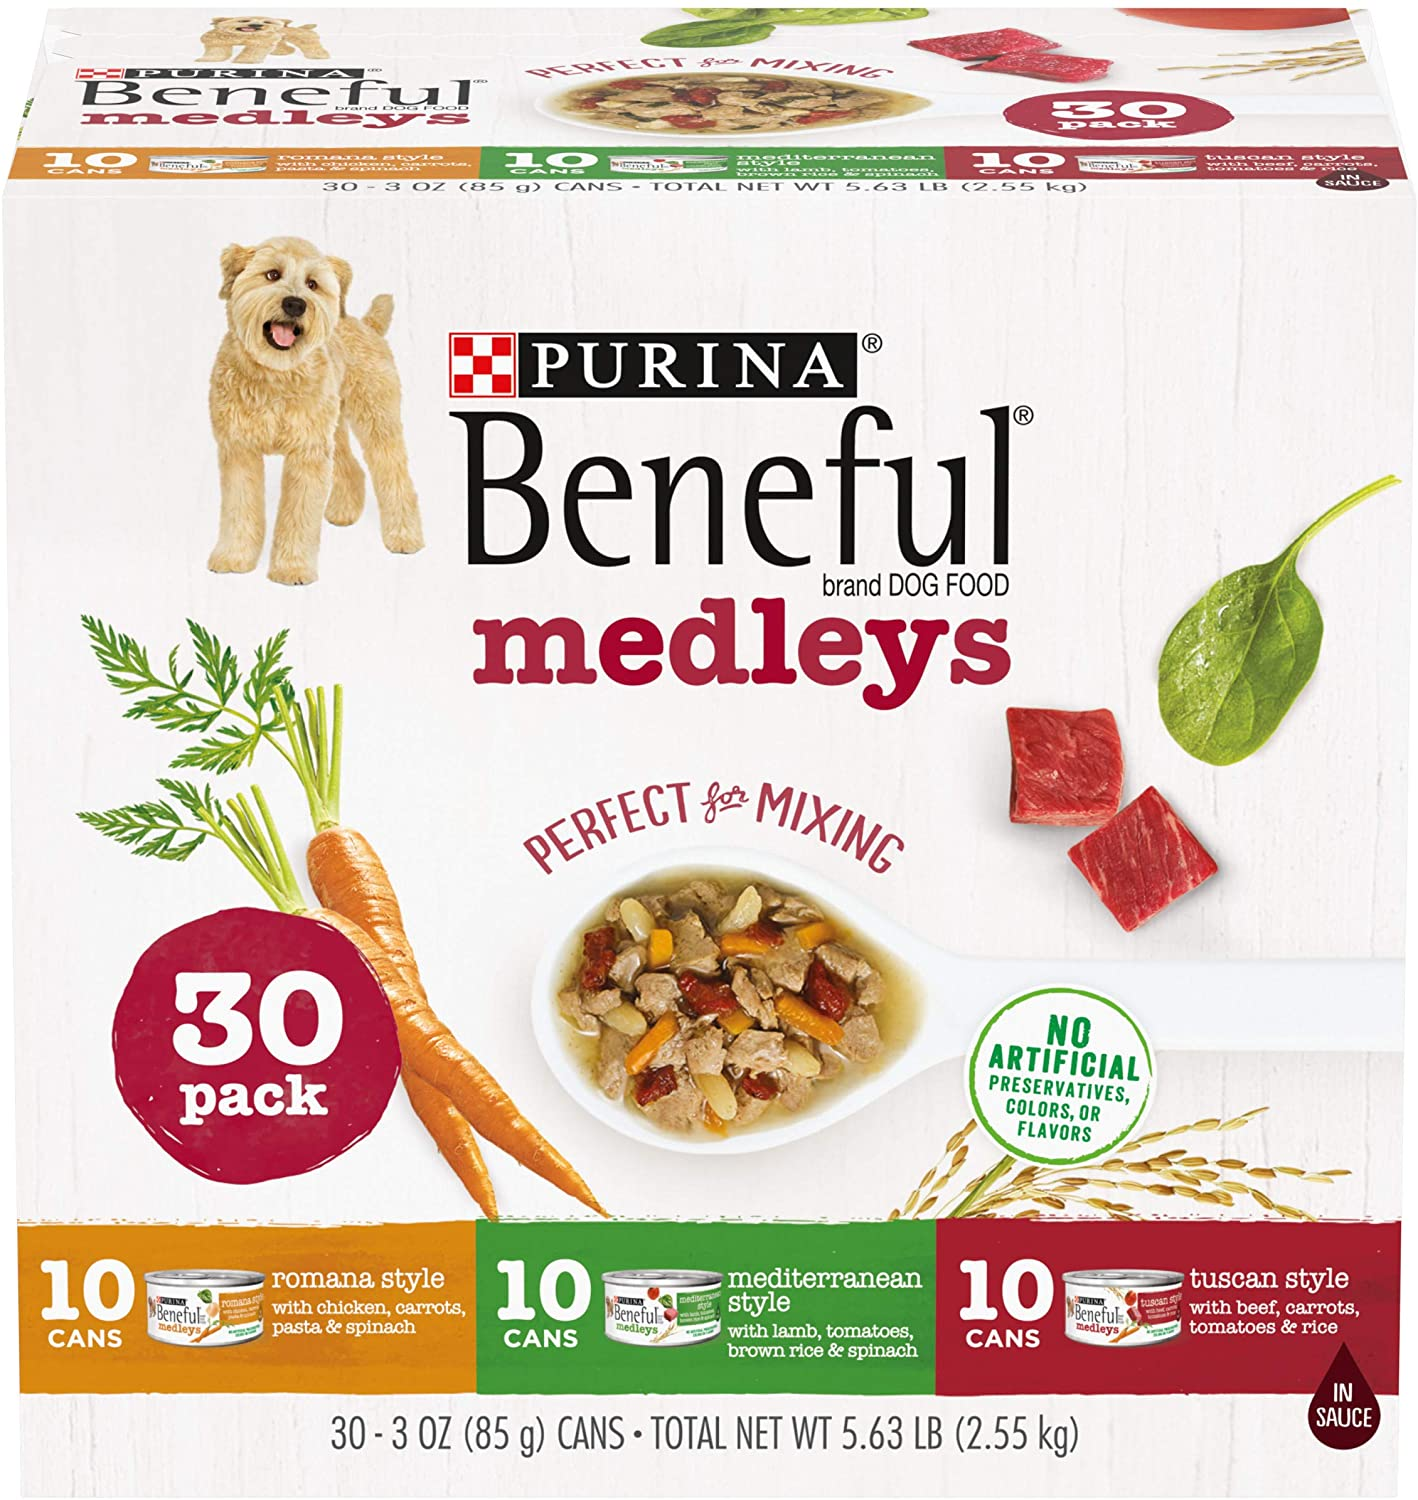 Purina Beneful Wet Dog Food Variety Pack, Medleys Tuscan, Romana & Mediterranean Style - (30) 3 oz. Cans